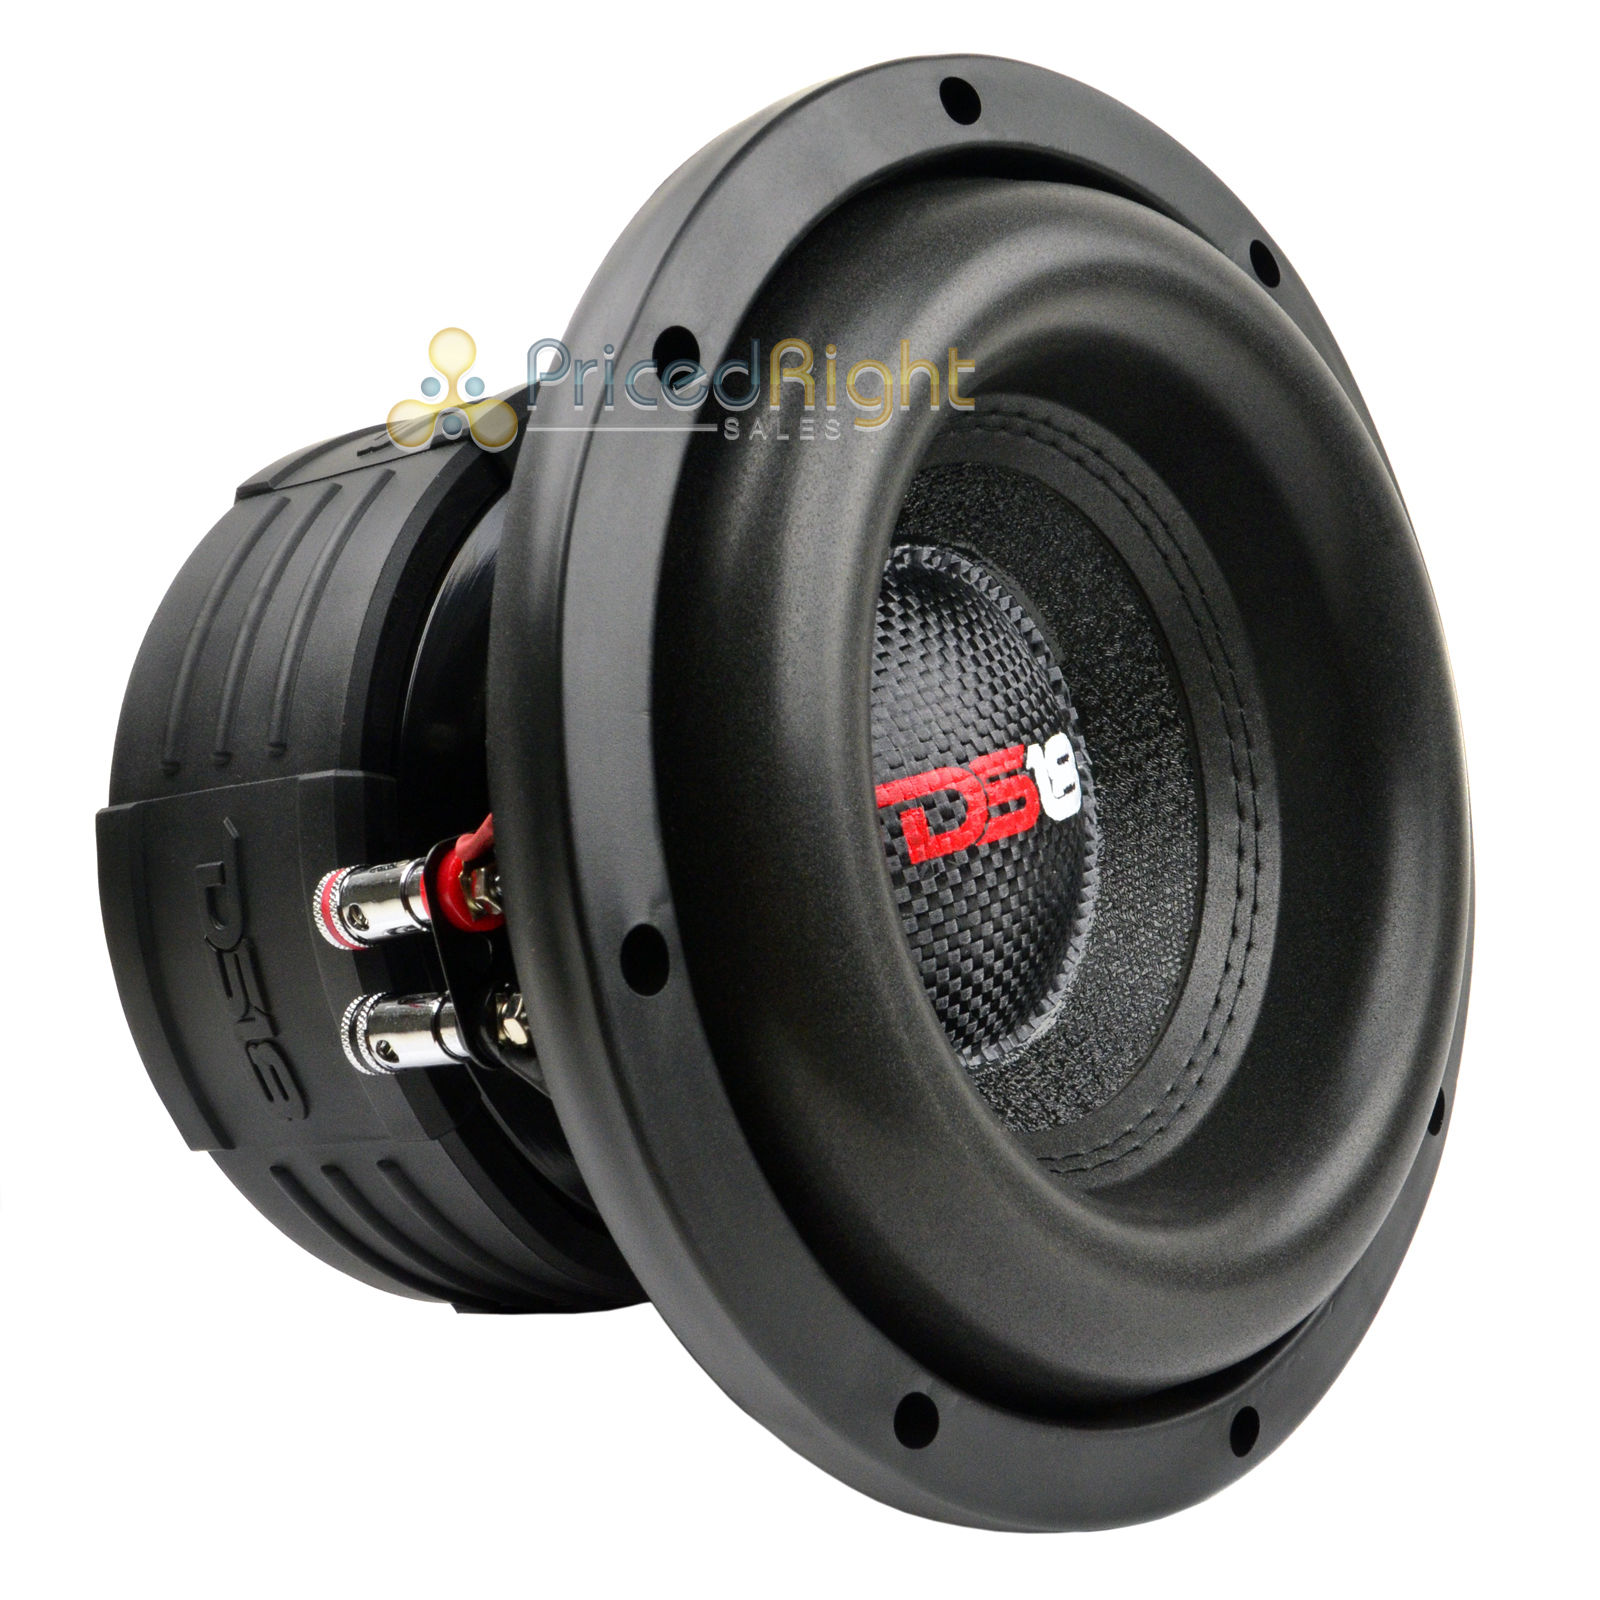 "DS18 Elite Z8 8"" Subwoofer Dual 4 Ohm 900 Watts Max Bass"